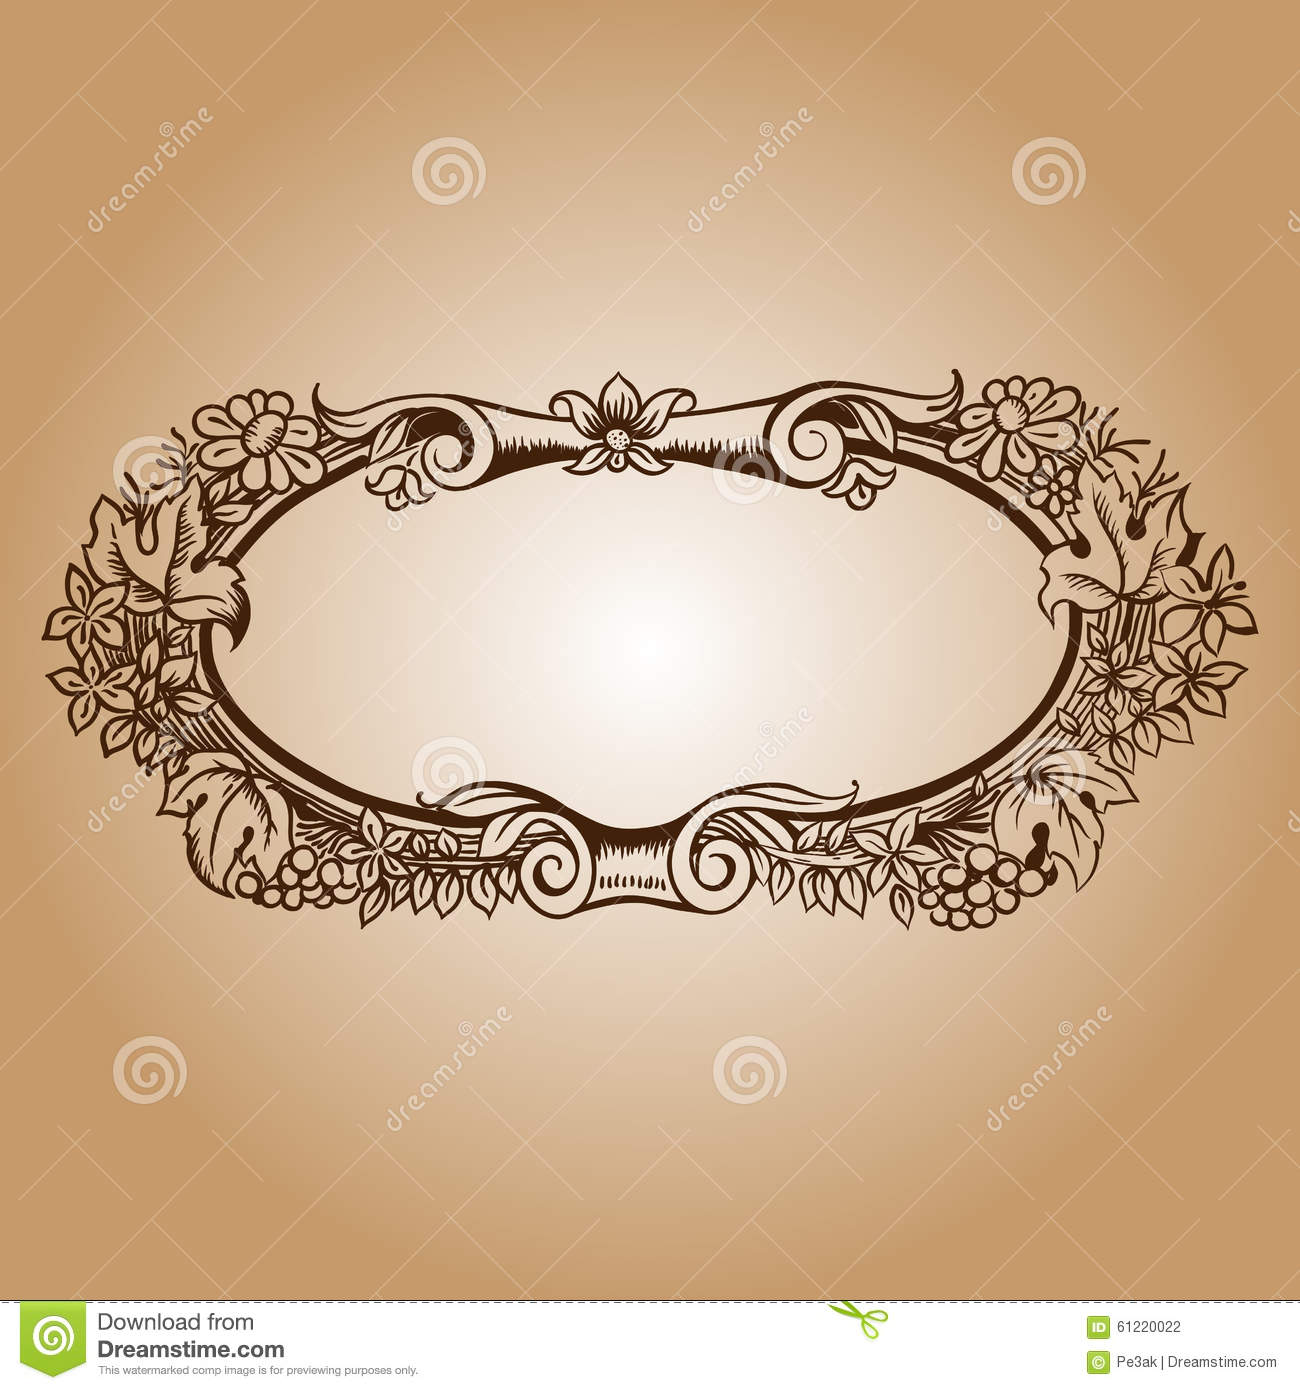 Vector vintage border frame engraving with retro ornament for Rococo decorative style